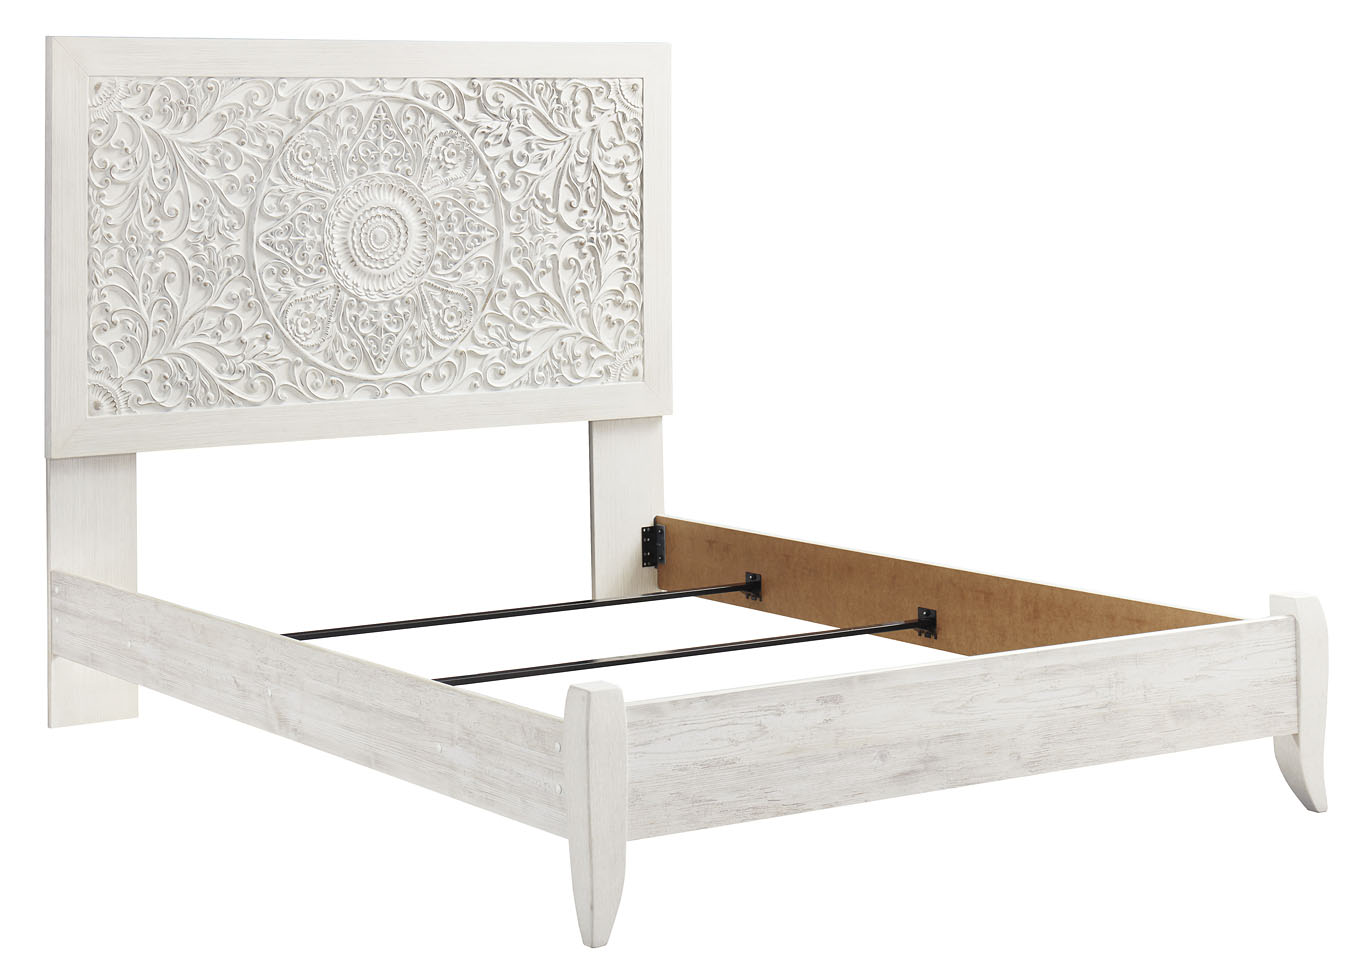 Paxberry Whitewash Queen Panel Bed,Signature Design By Ashley